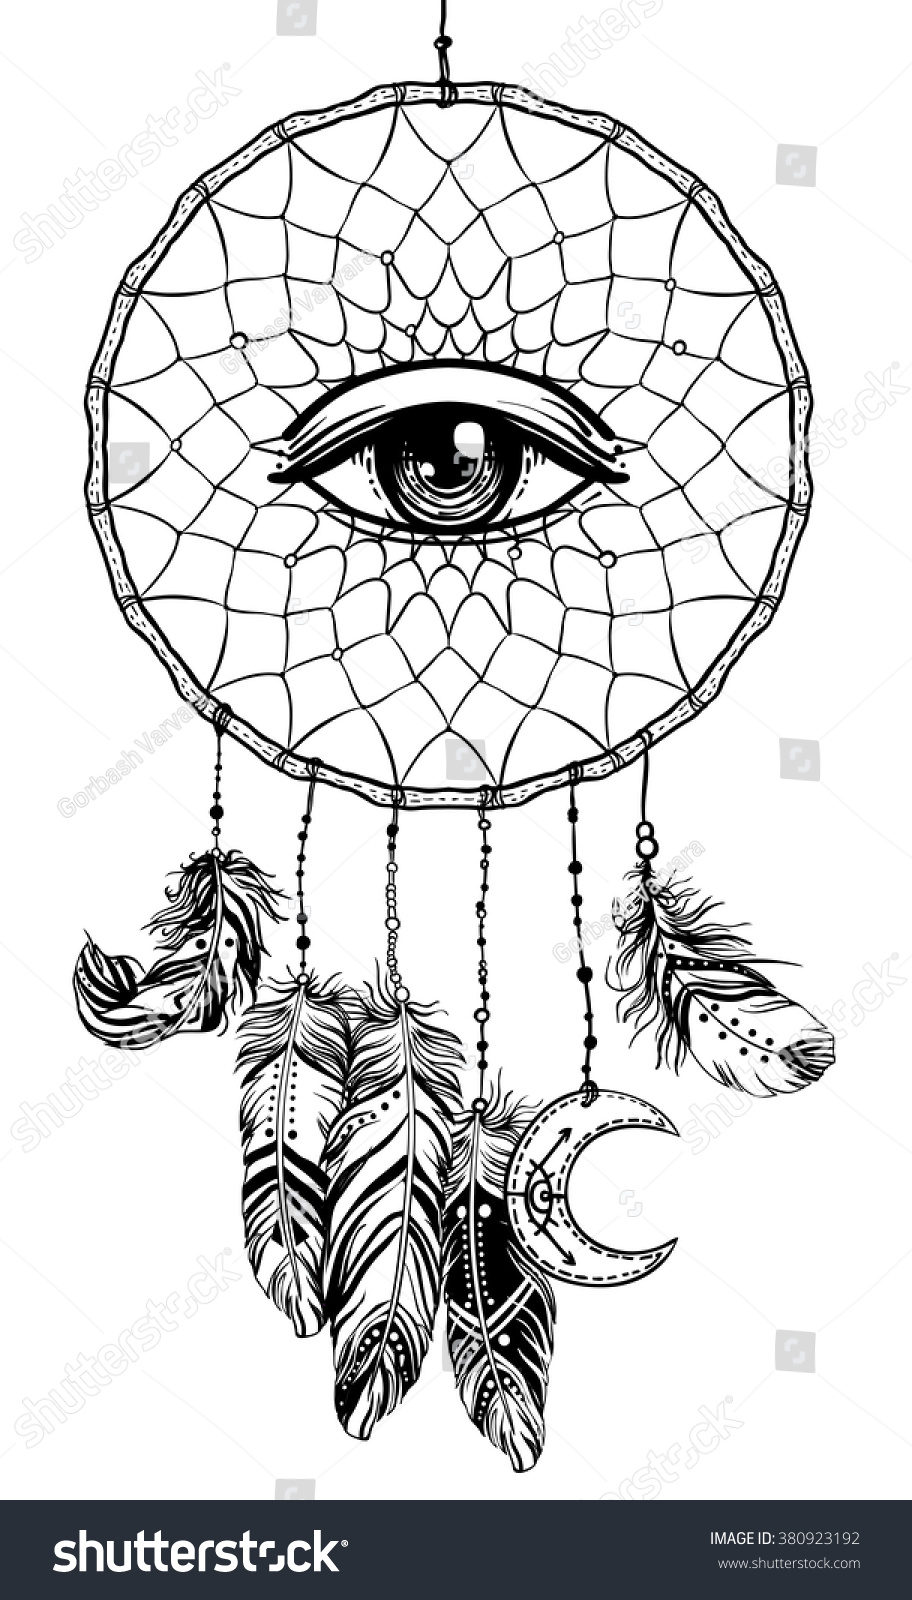 The hipster coloring book for adults - Color Hand Drawn Native American Indian Talisman Dreamcatcher With Eye Feathers And Moon Vector Hipster